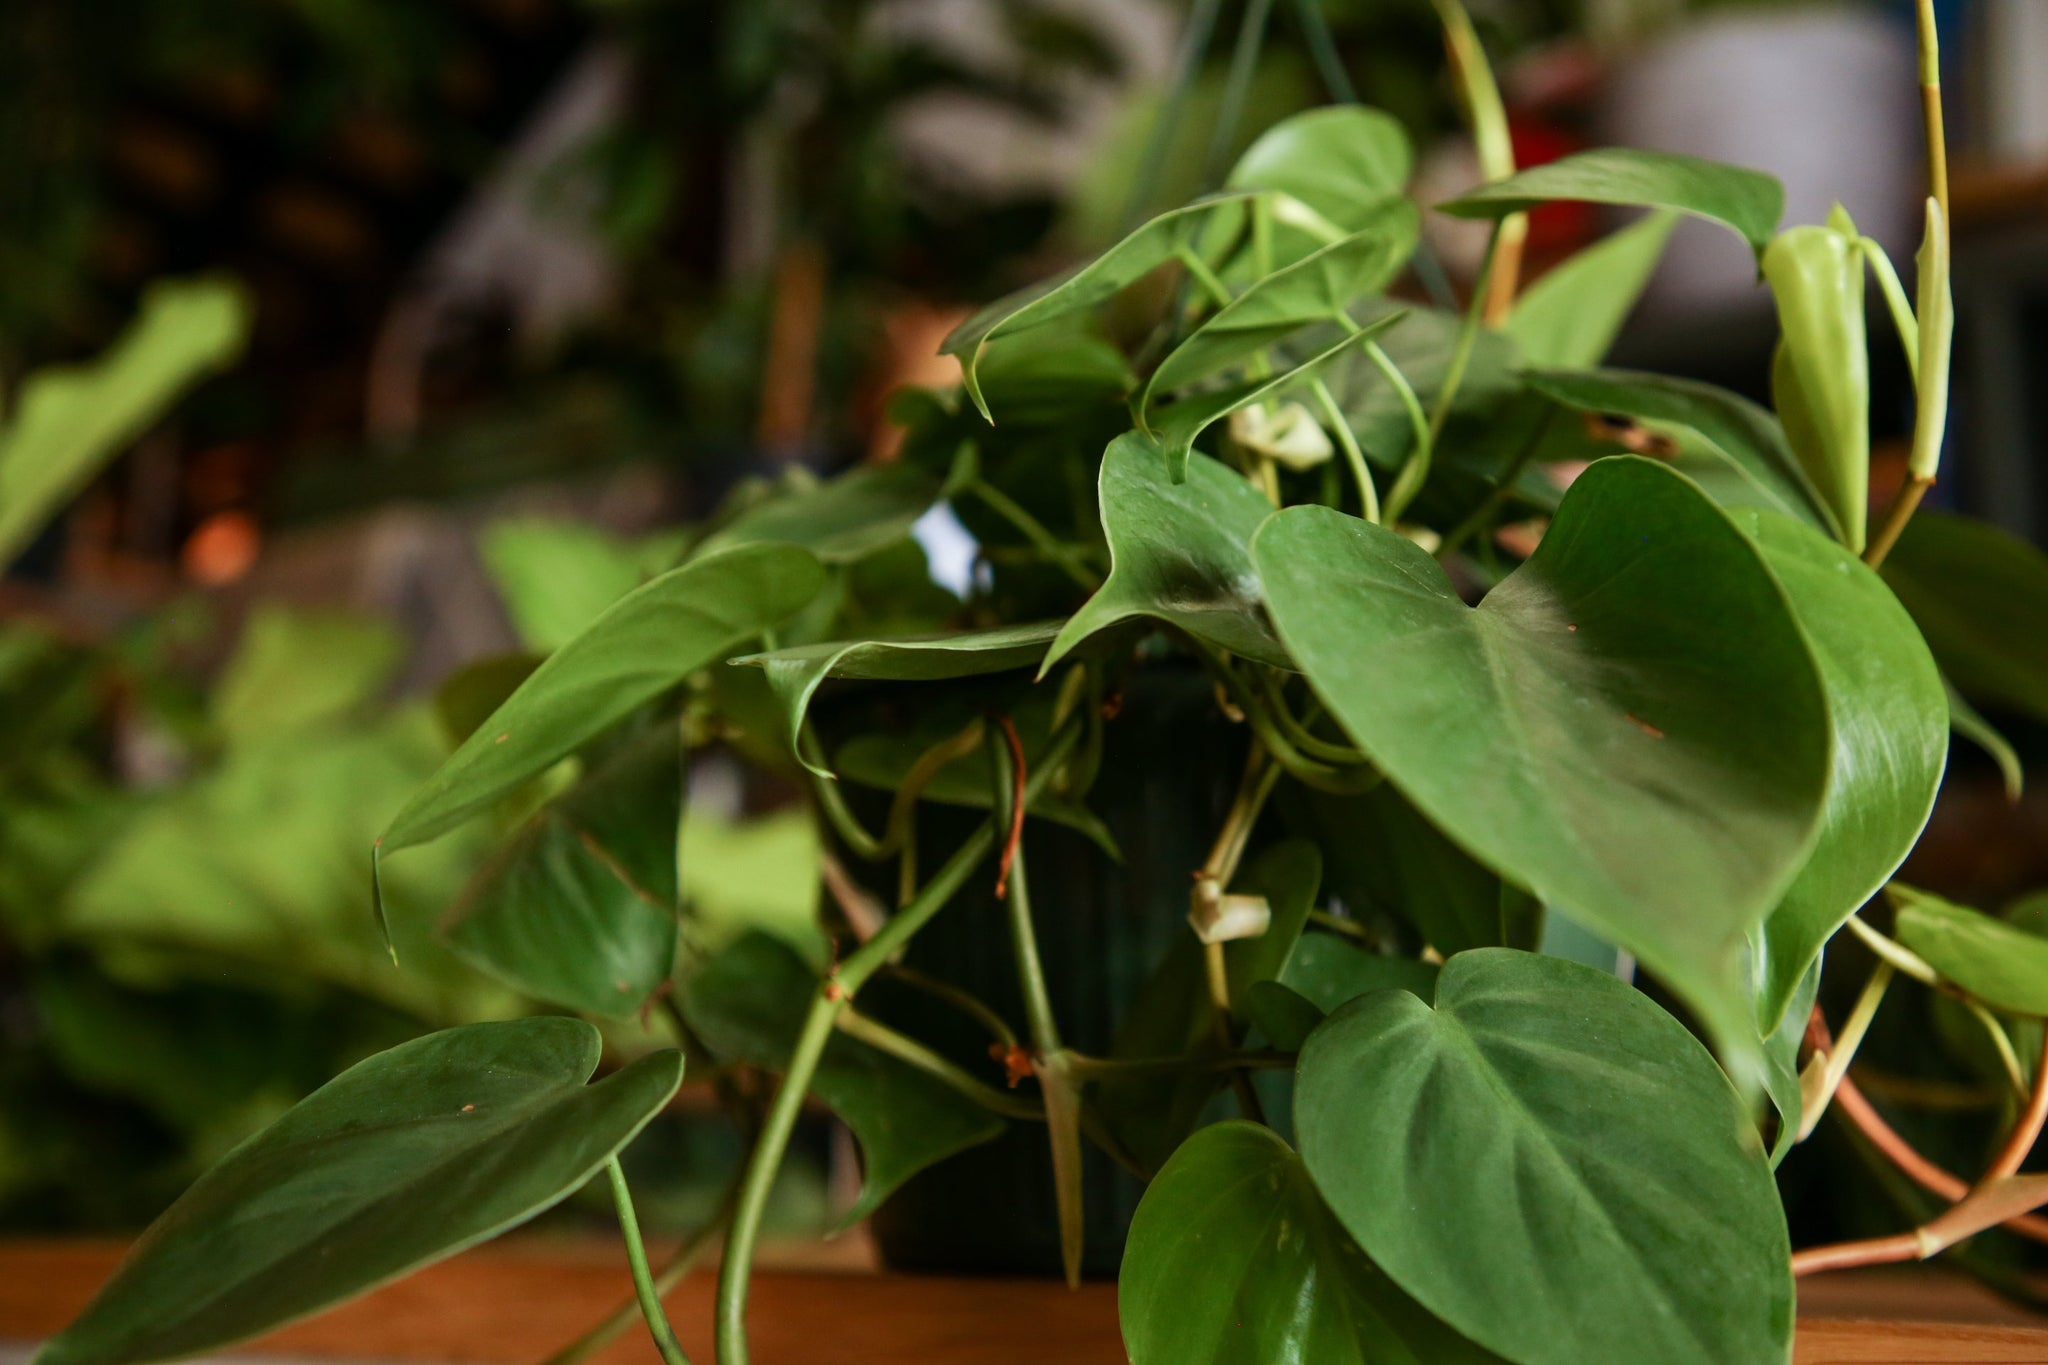 Philodendron Cordatum [Heart Vine] Care